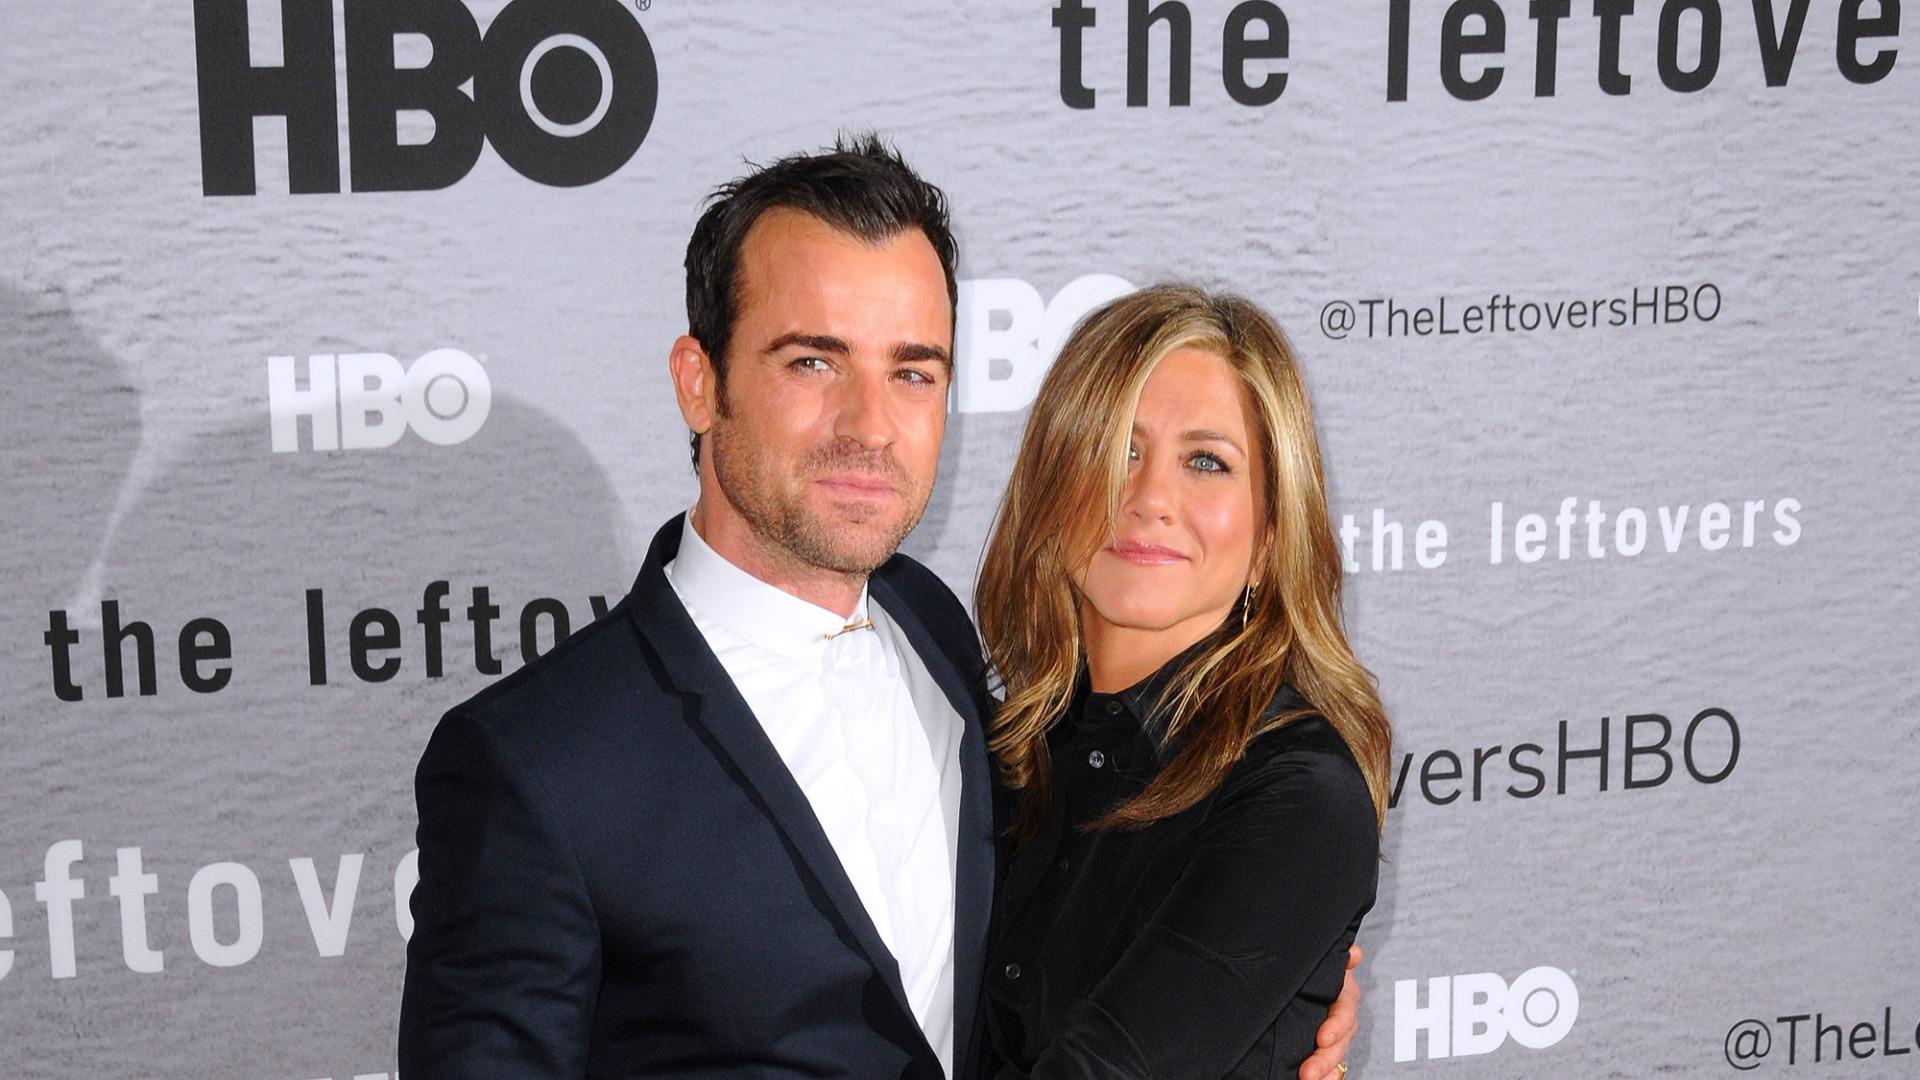 Jennifer Aniston is completely smitten with Justin Theroux